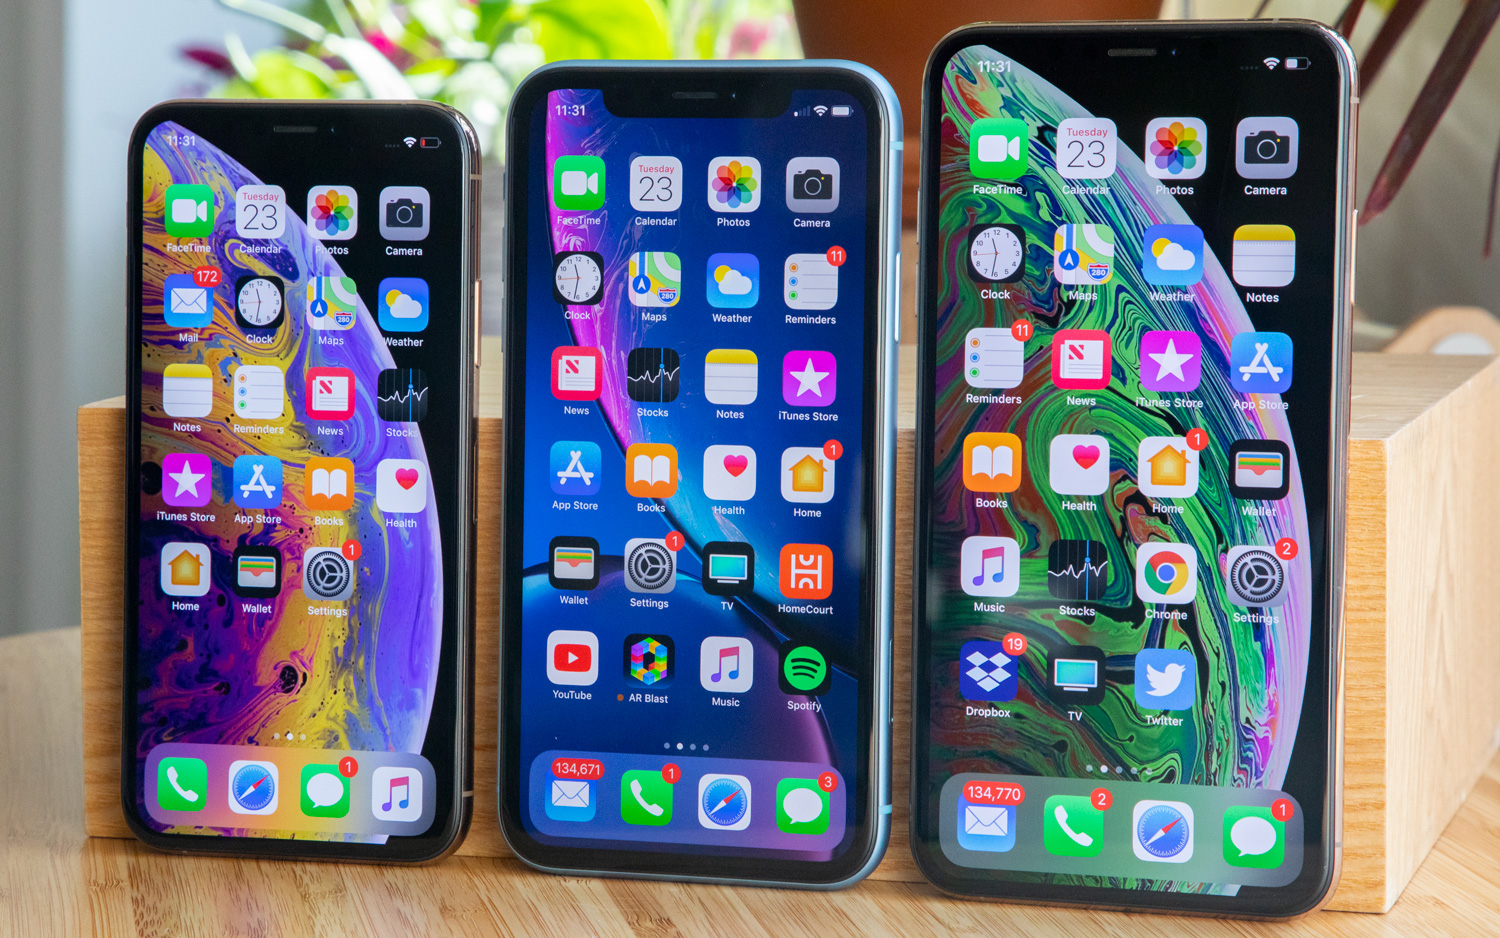 Best iPhones 2019: Which Apple Phone Should You Get? | Tom's